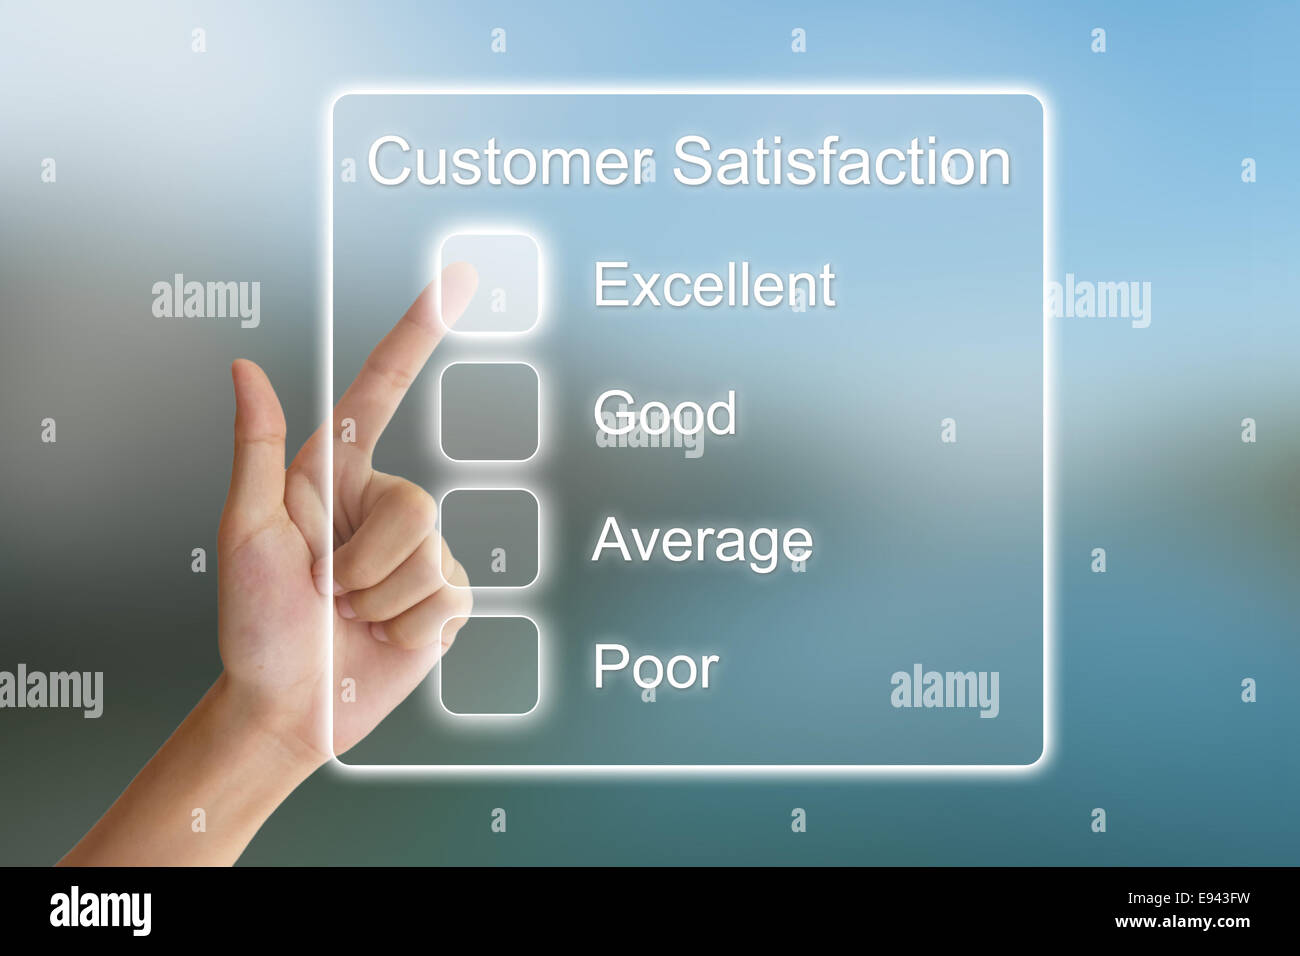 hand clicking customer satisfaction on virtual screen interface - Stock Image